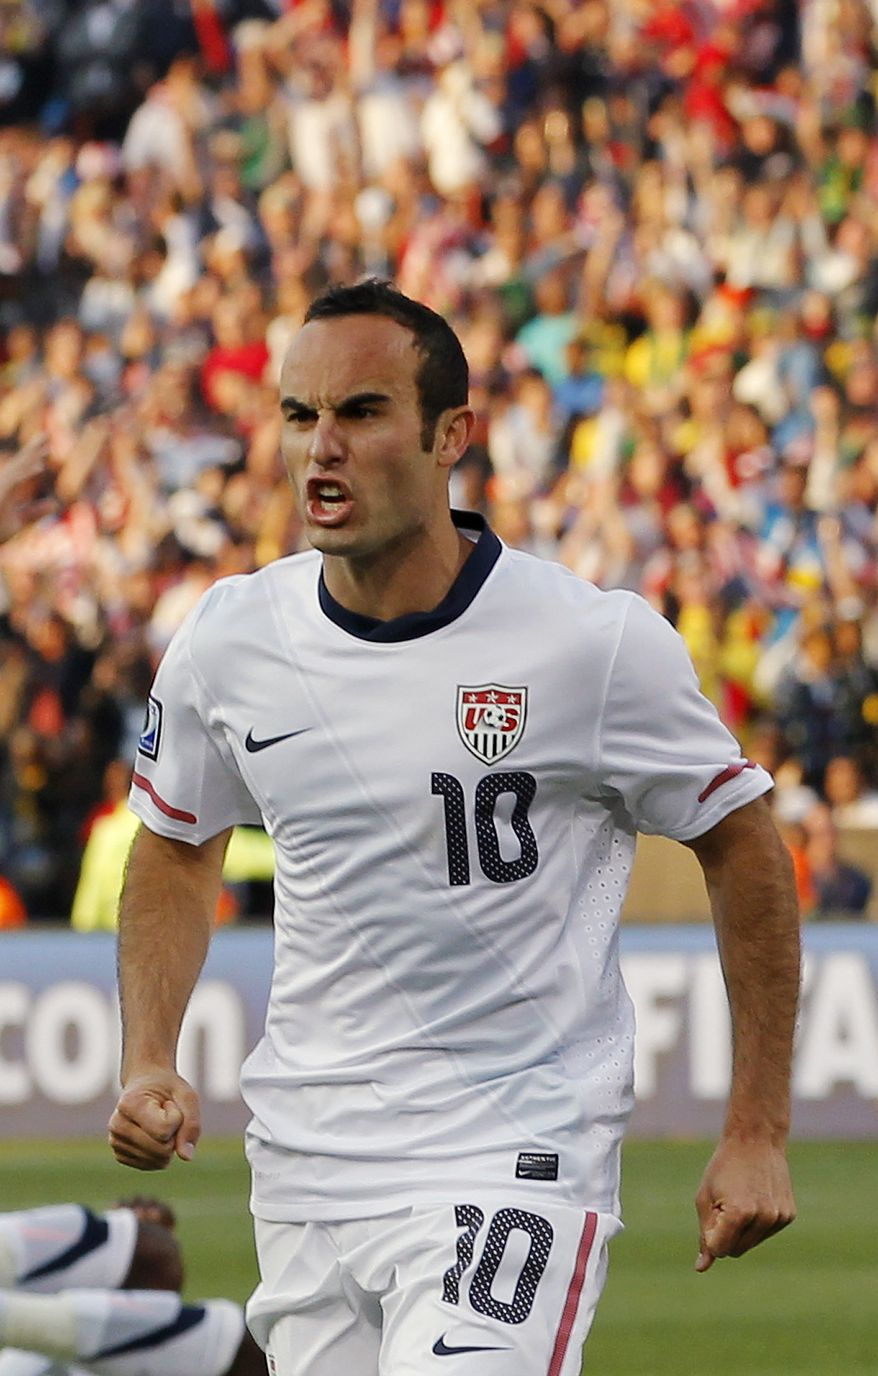 Landon Donovan of the United States soccer team reacts after a goal by teammate Clint Dempsey was disallowed during the World Cup match between the United States and Algeria at the Loftus Versfeld Stadium in Pretoria, South Africa, on Wednesday, June 23, 2010. (AP Photo/Bernat Armangue)